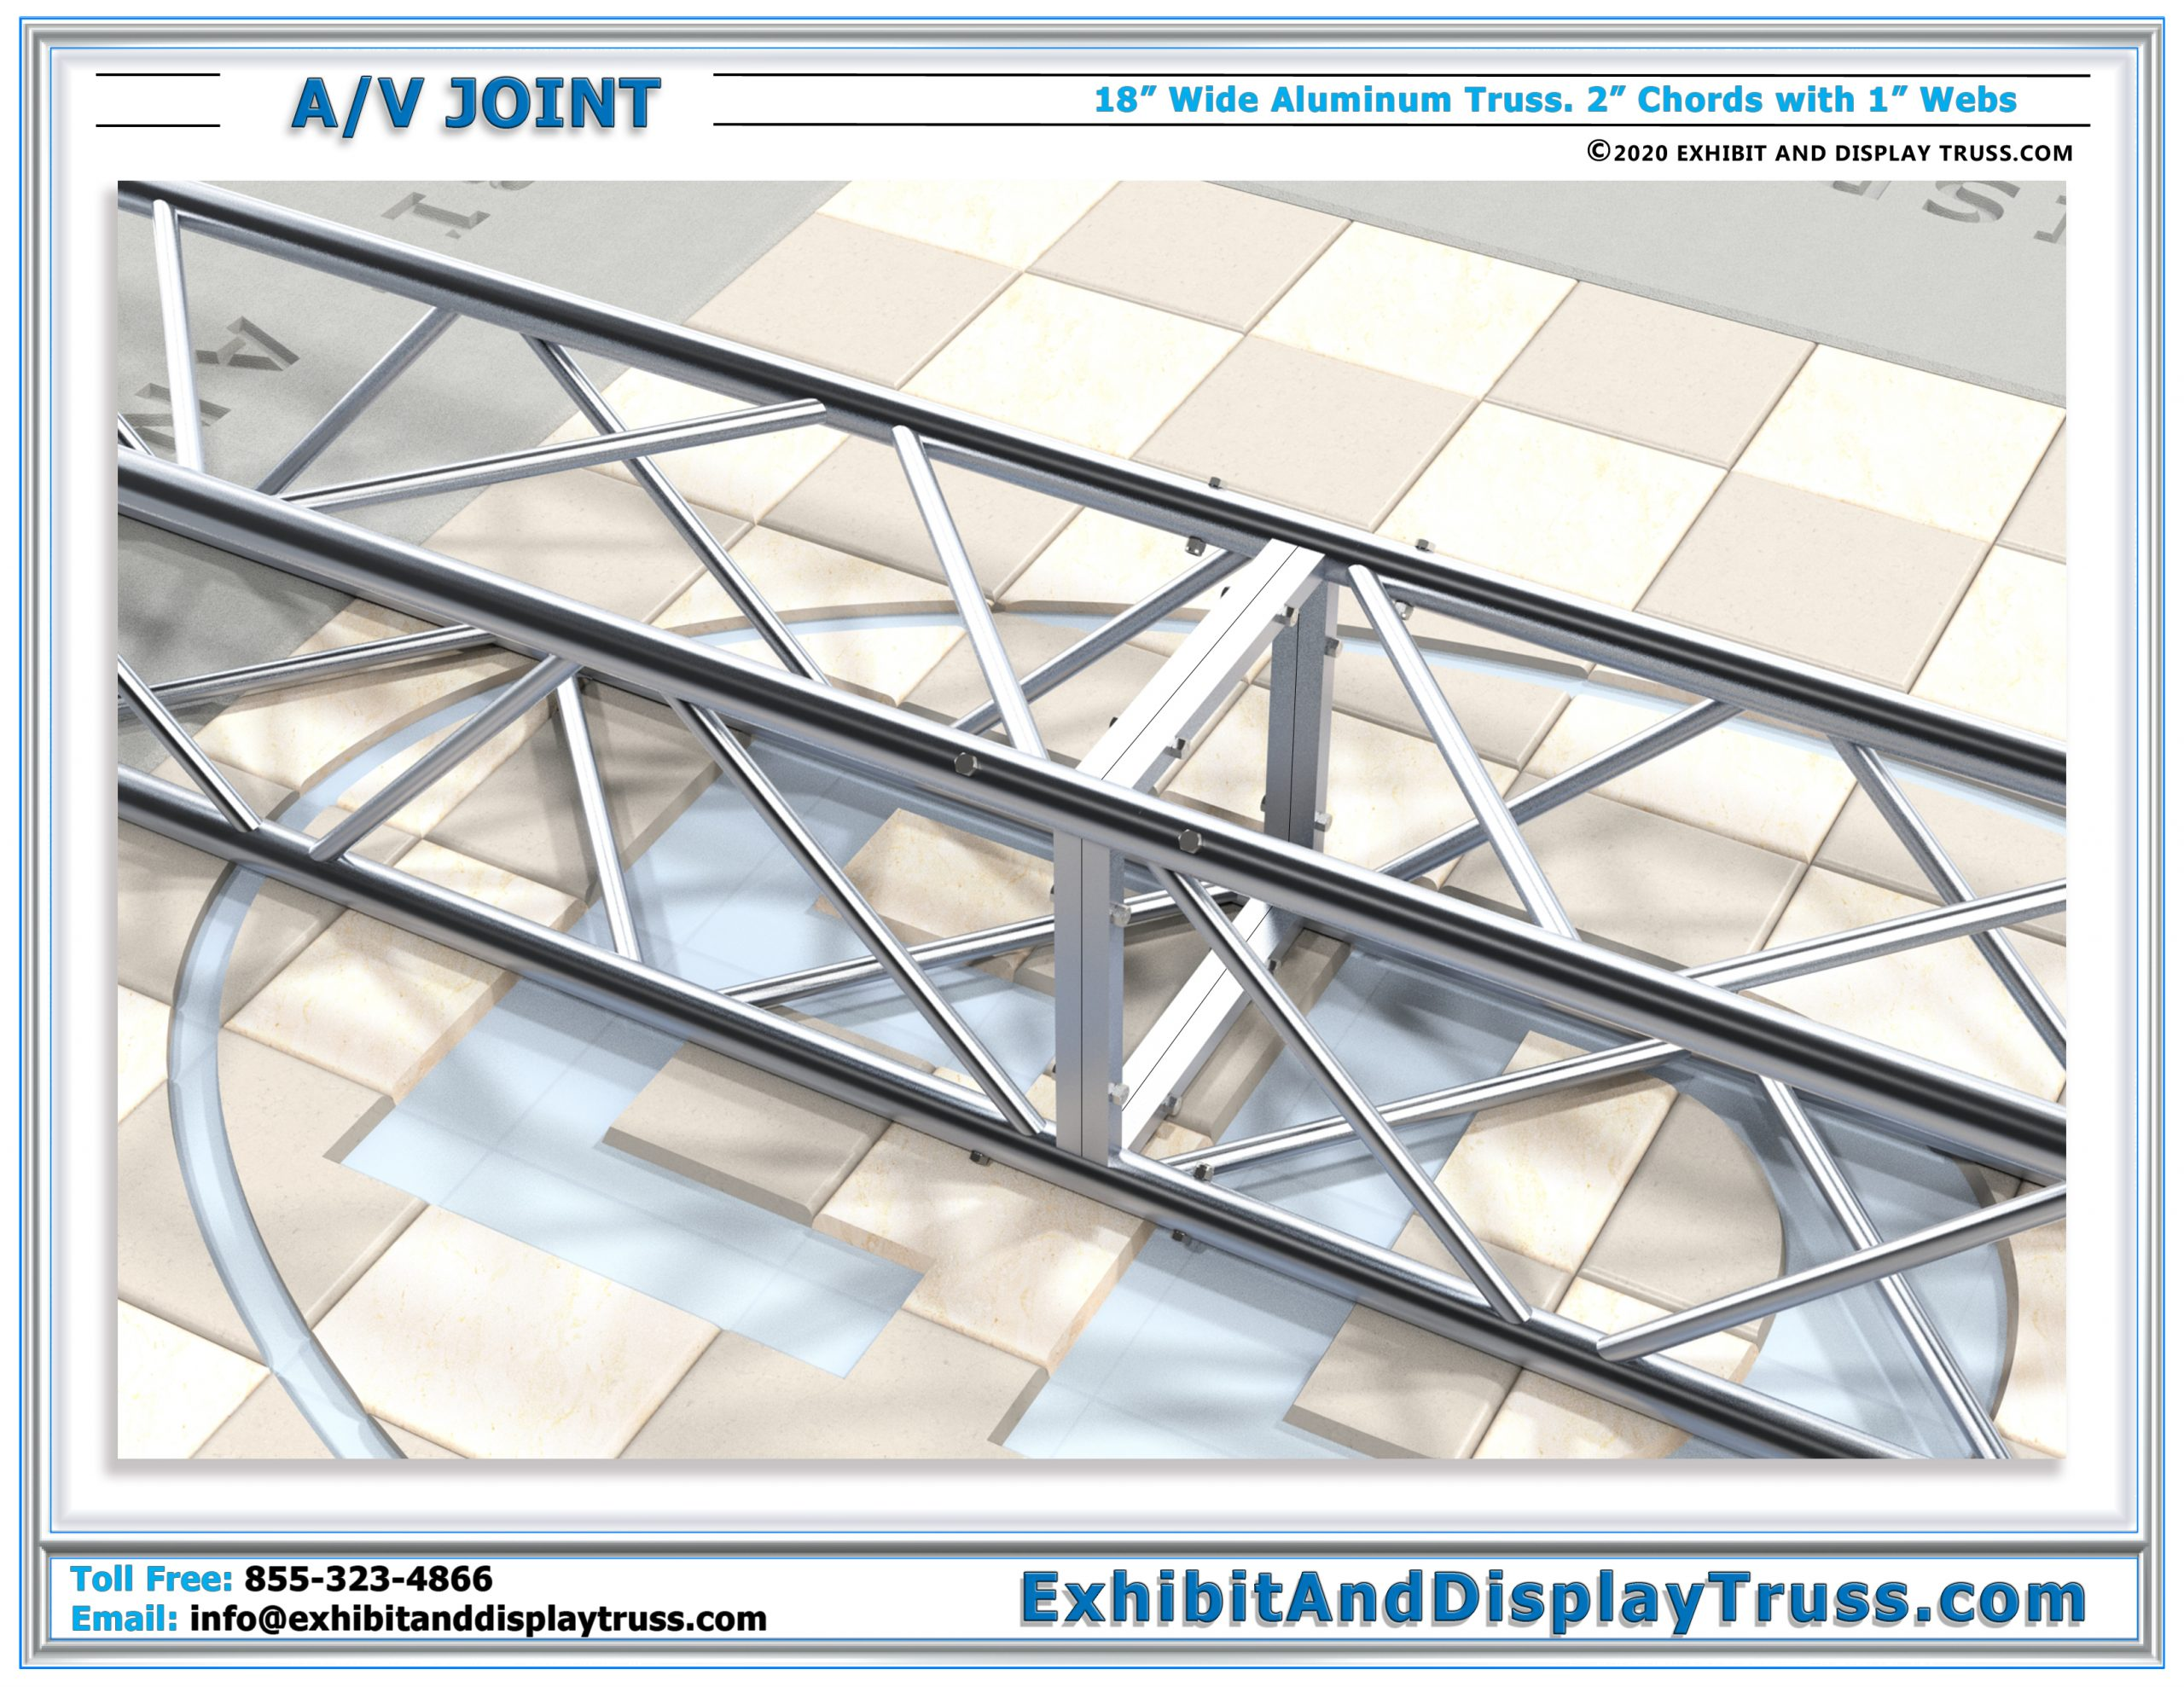 A/V Joint – Structural Fortification for Aluminum Trussing Components